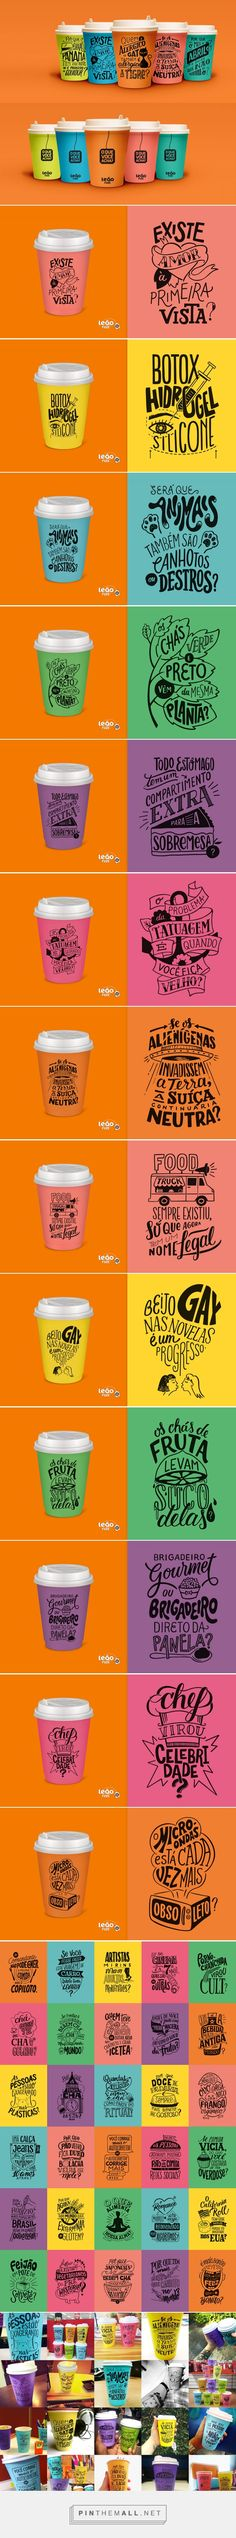 Illustration, typography and packaging for Leão Fuze Letterings on Behance curated by Packaging Diva PD. Series of 60 compositions of lettering + illustration made for an ad campaign of Leão, the Coca-Cola branch of tea in Brazil.